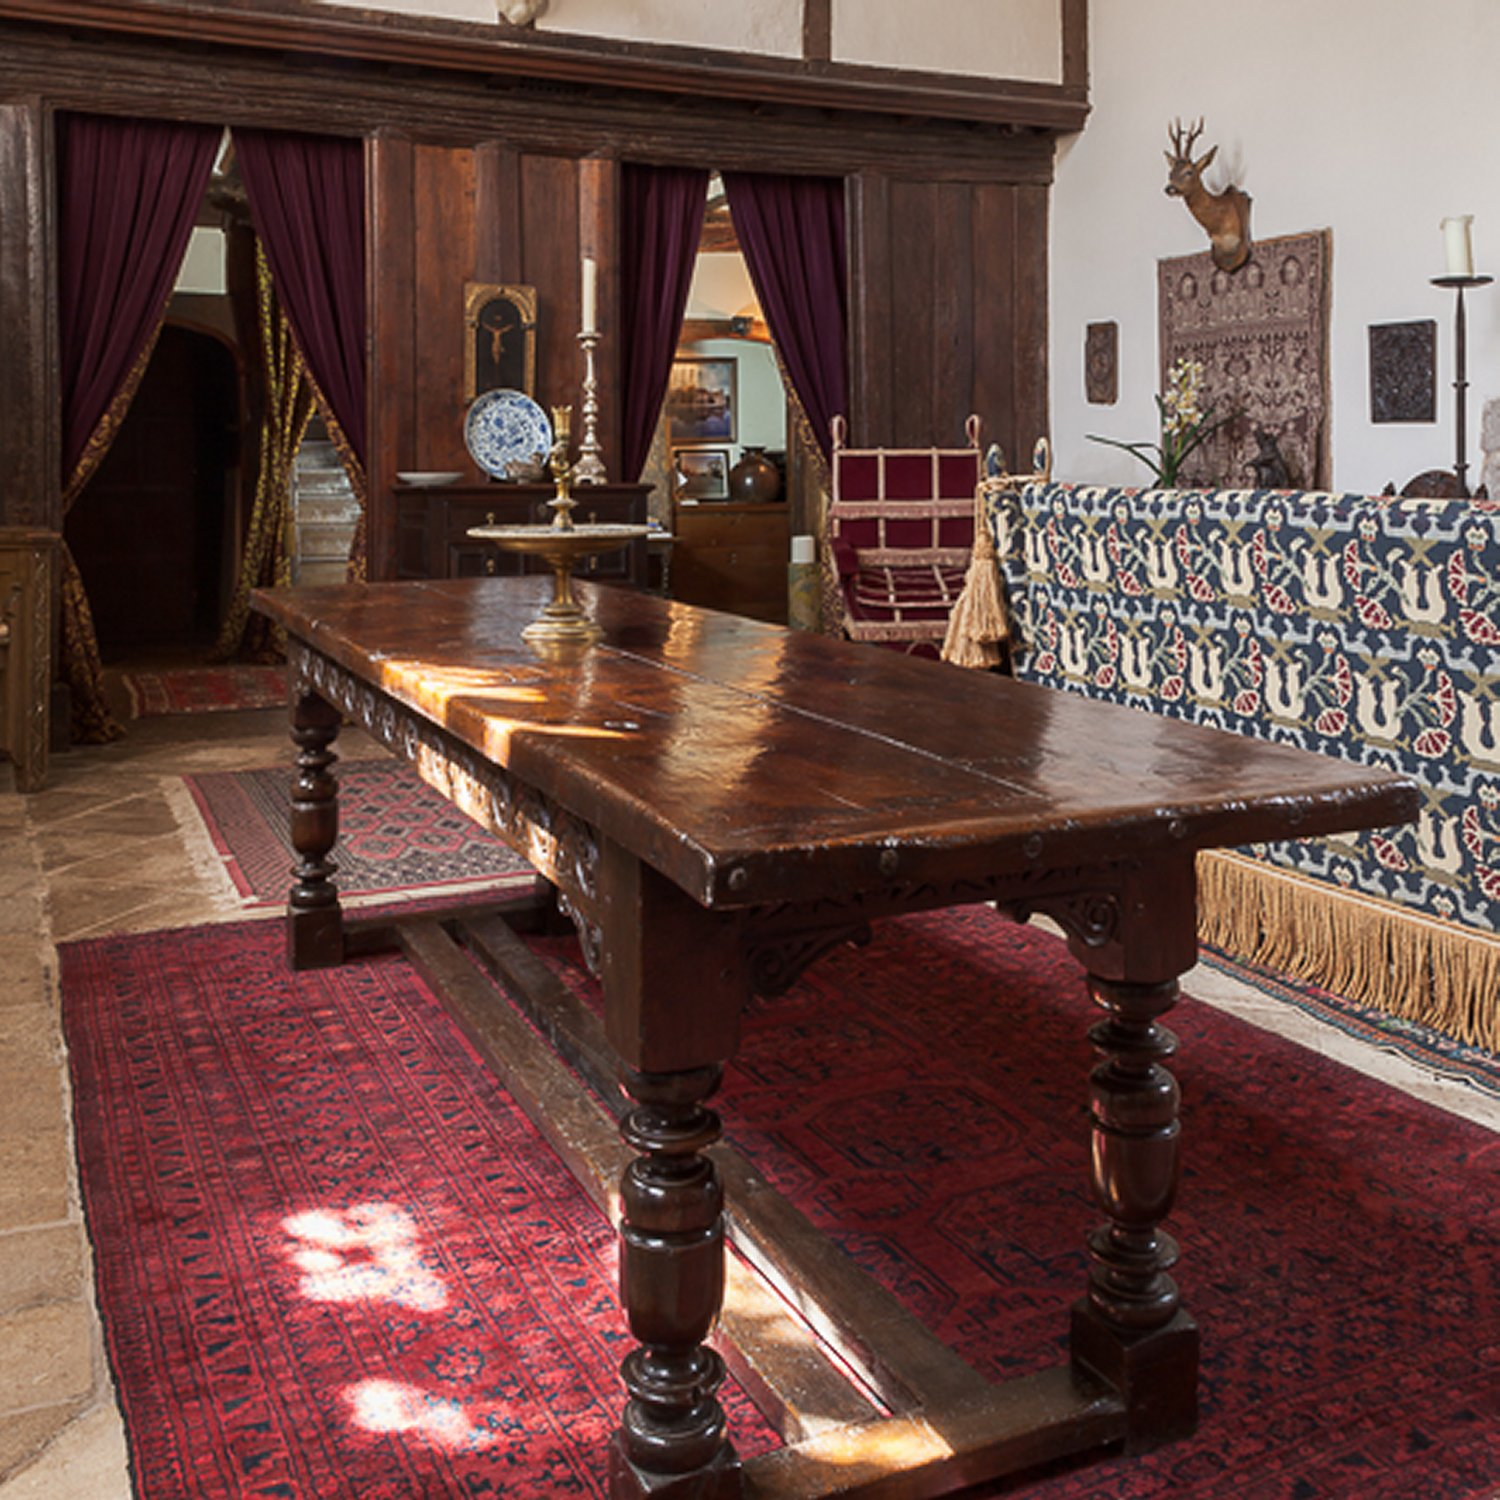 Charles I Dining Table in the Great Hall